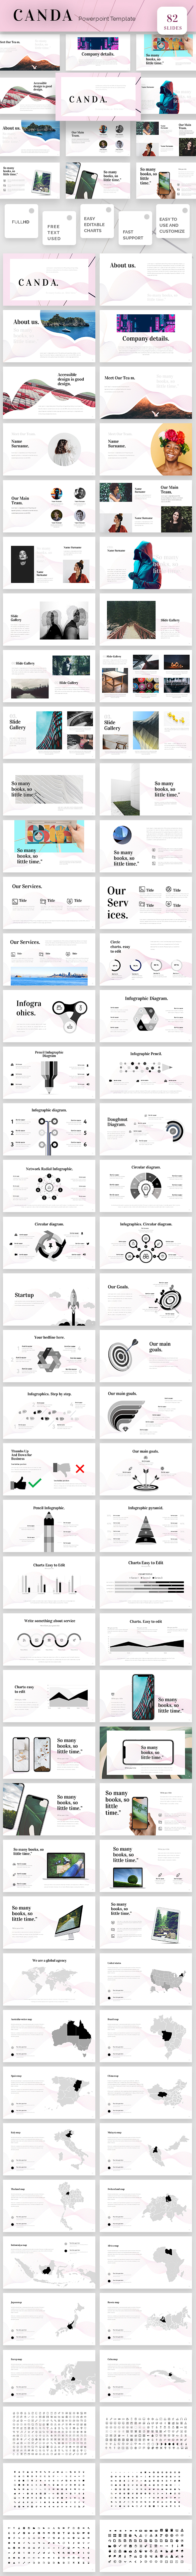 Canda Powerpoint Presentation Template